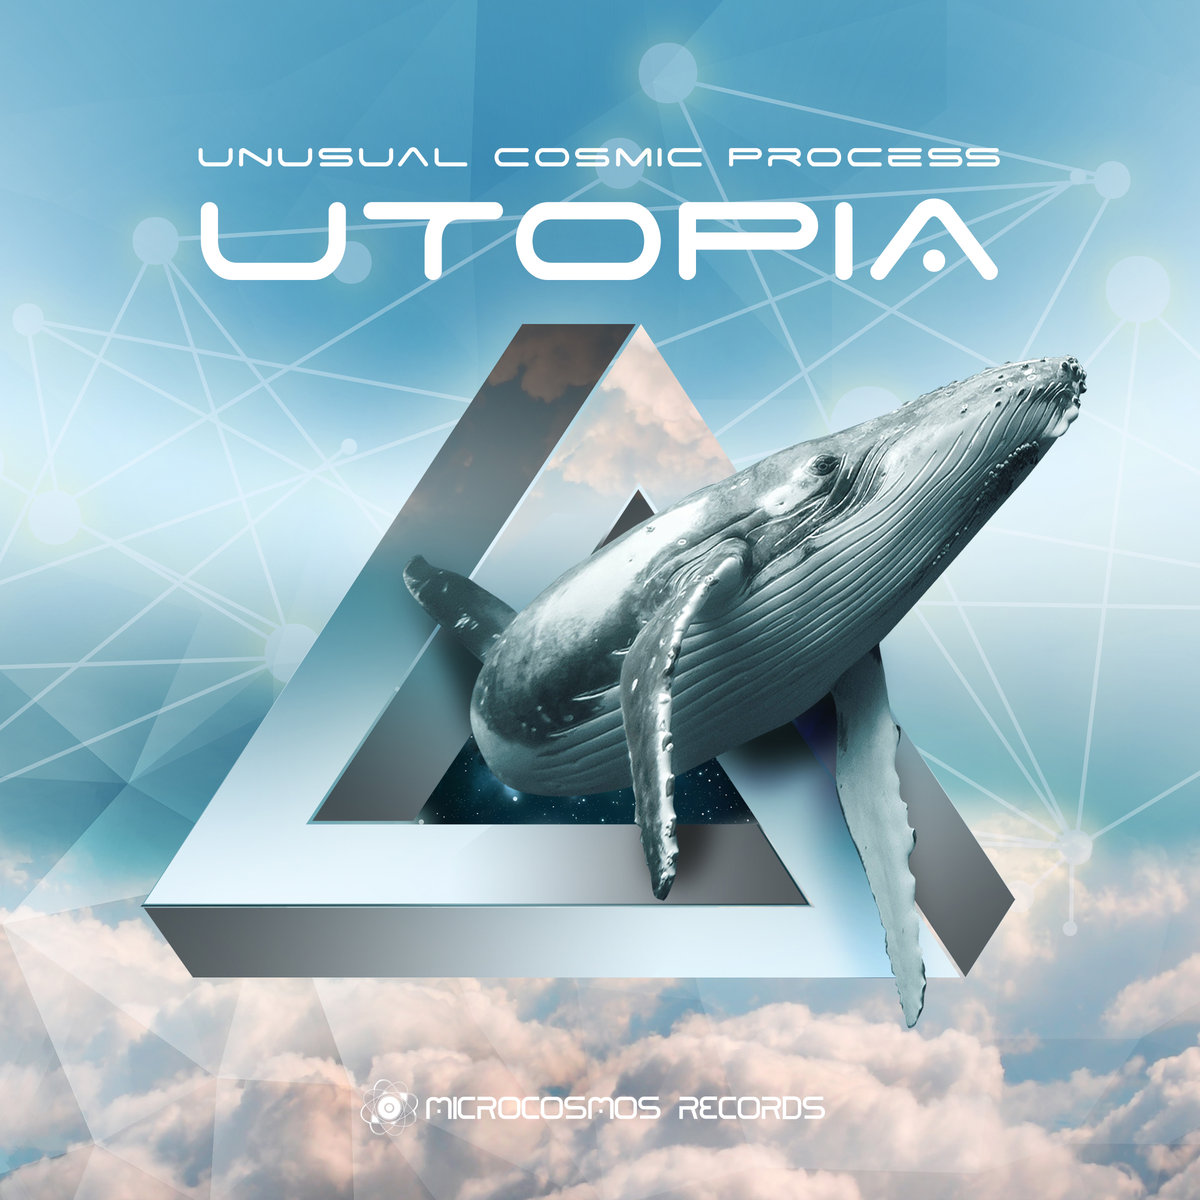 Zodiac - Provincial Disco (Unusual Cosmic Process Remix) @ 'Utopia' album (ambient, chill-out)